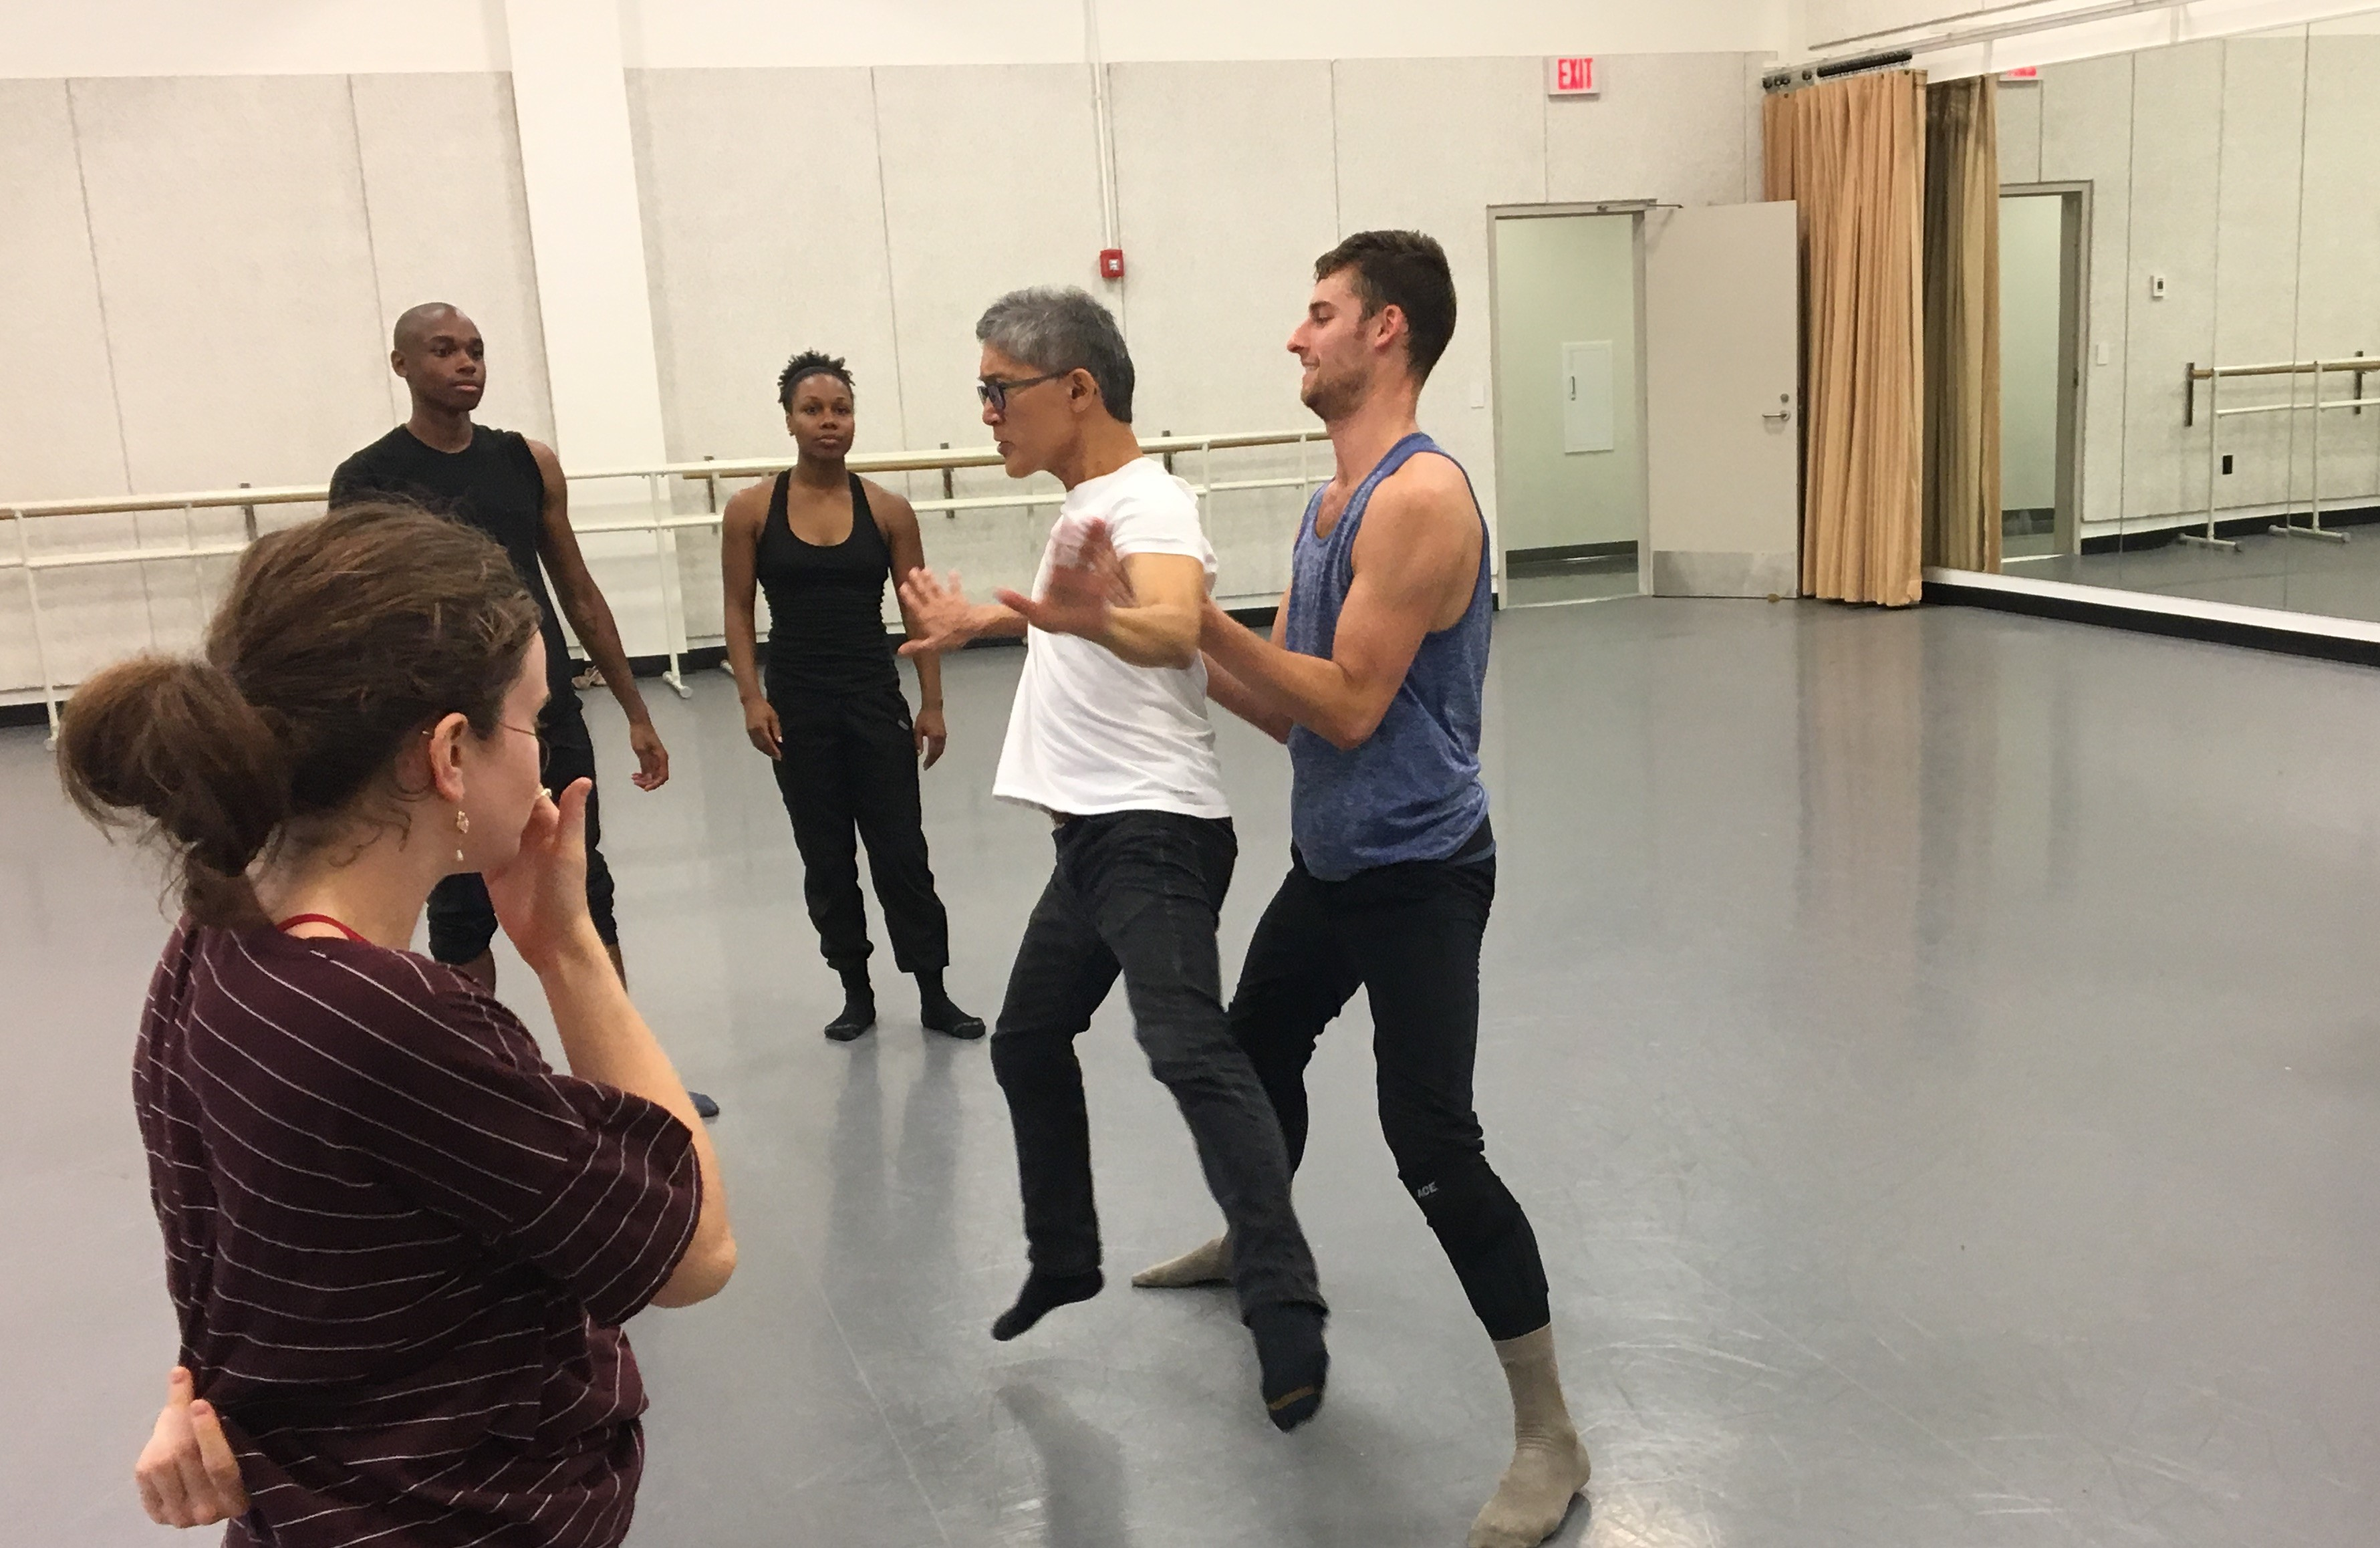 David Shimotakahara works with dancer Tyler Ring